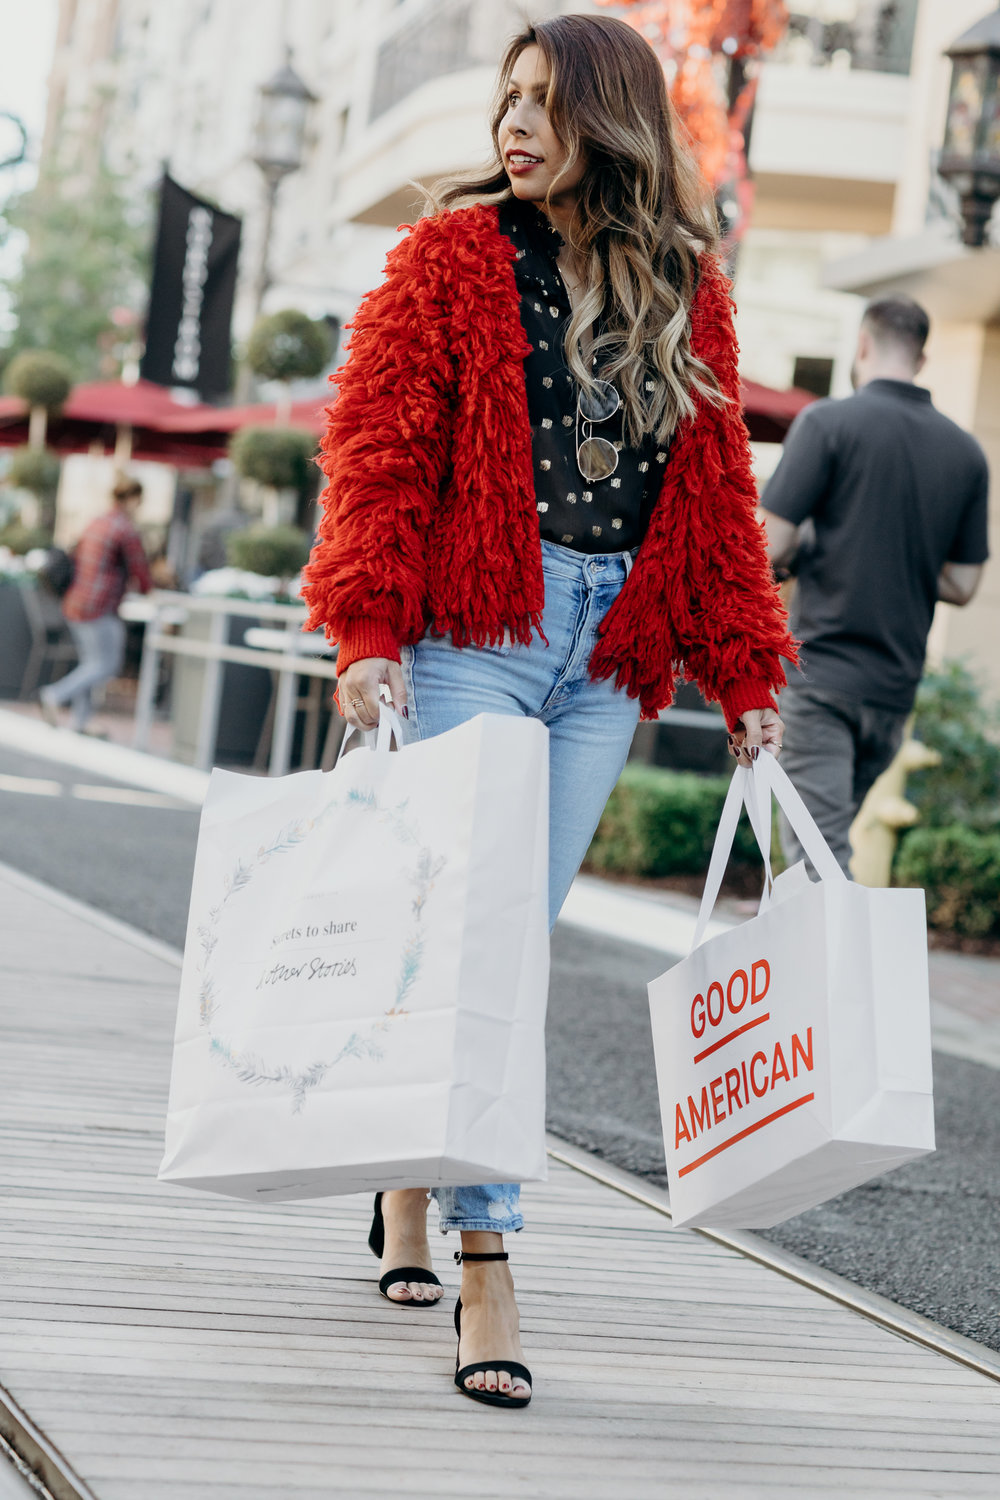 How to wear Red Fuzzy Jacket - Holiday Shopping at the Americana